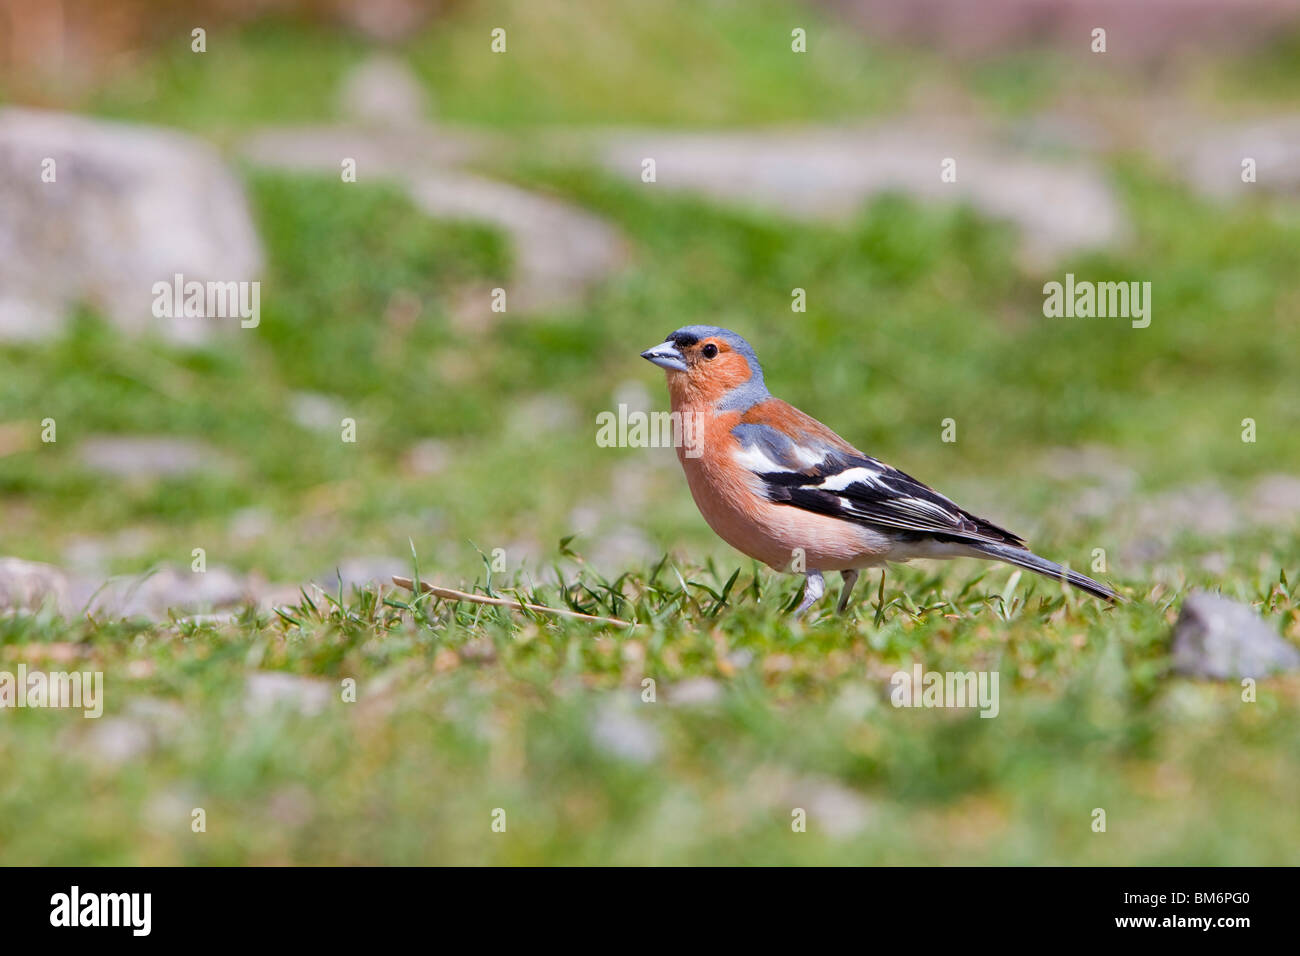 A male Chaffinch (Fringilla coelebs) outside the Black Sail youth Hostel in Ennerdale, Lake District, UK. - Stock Image